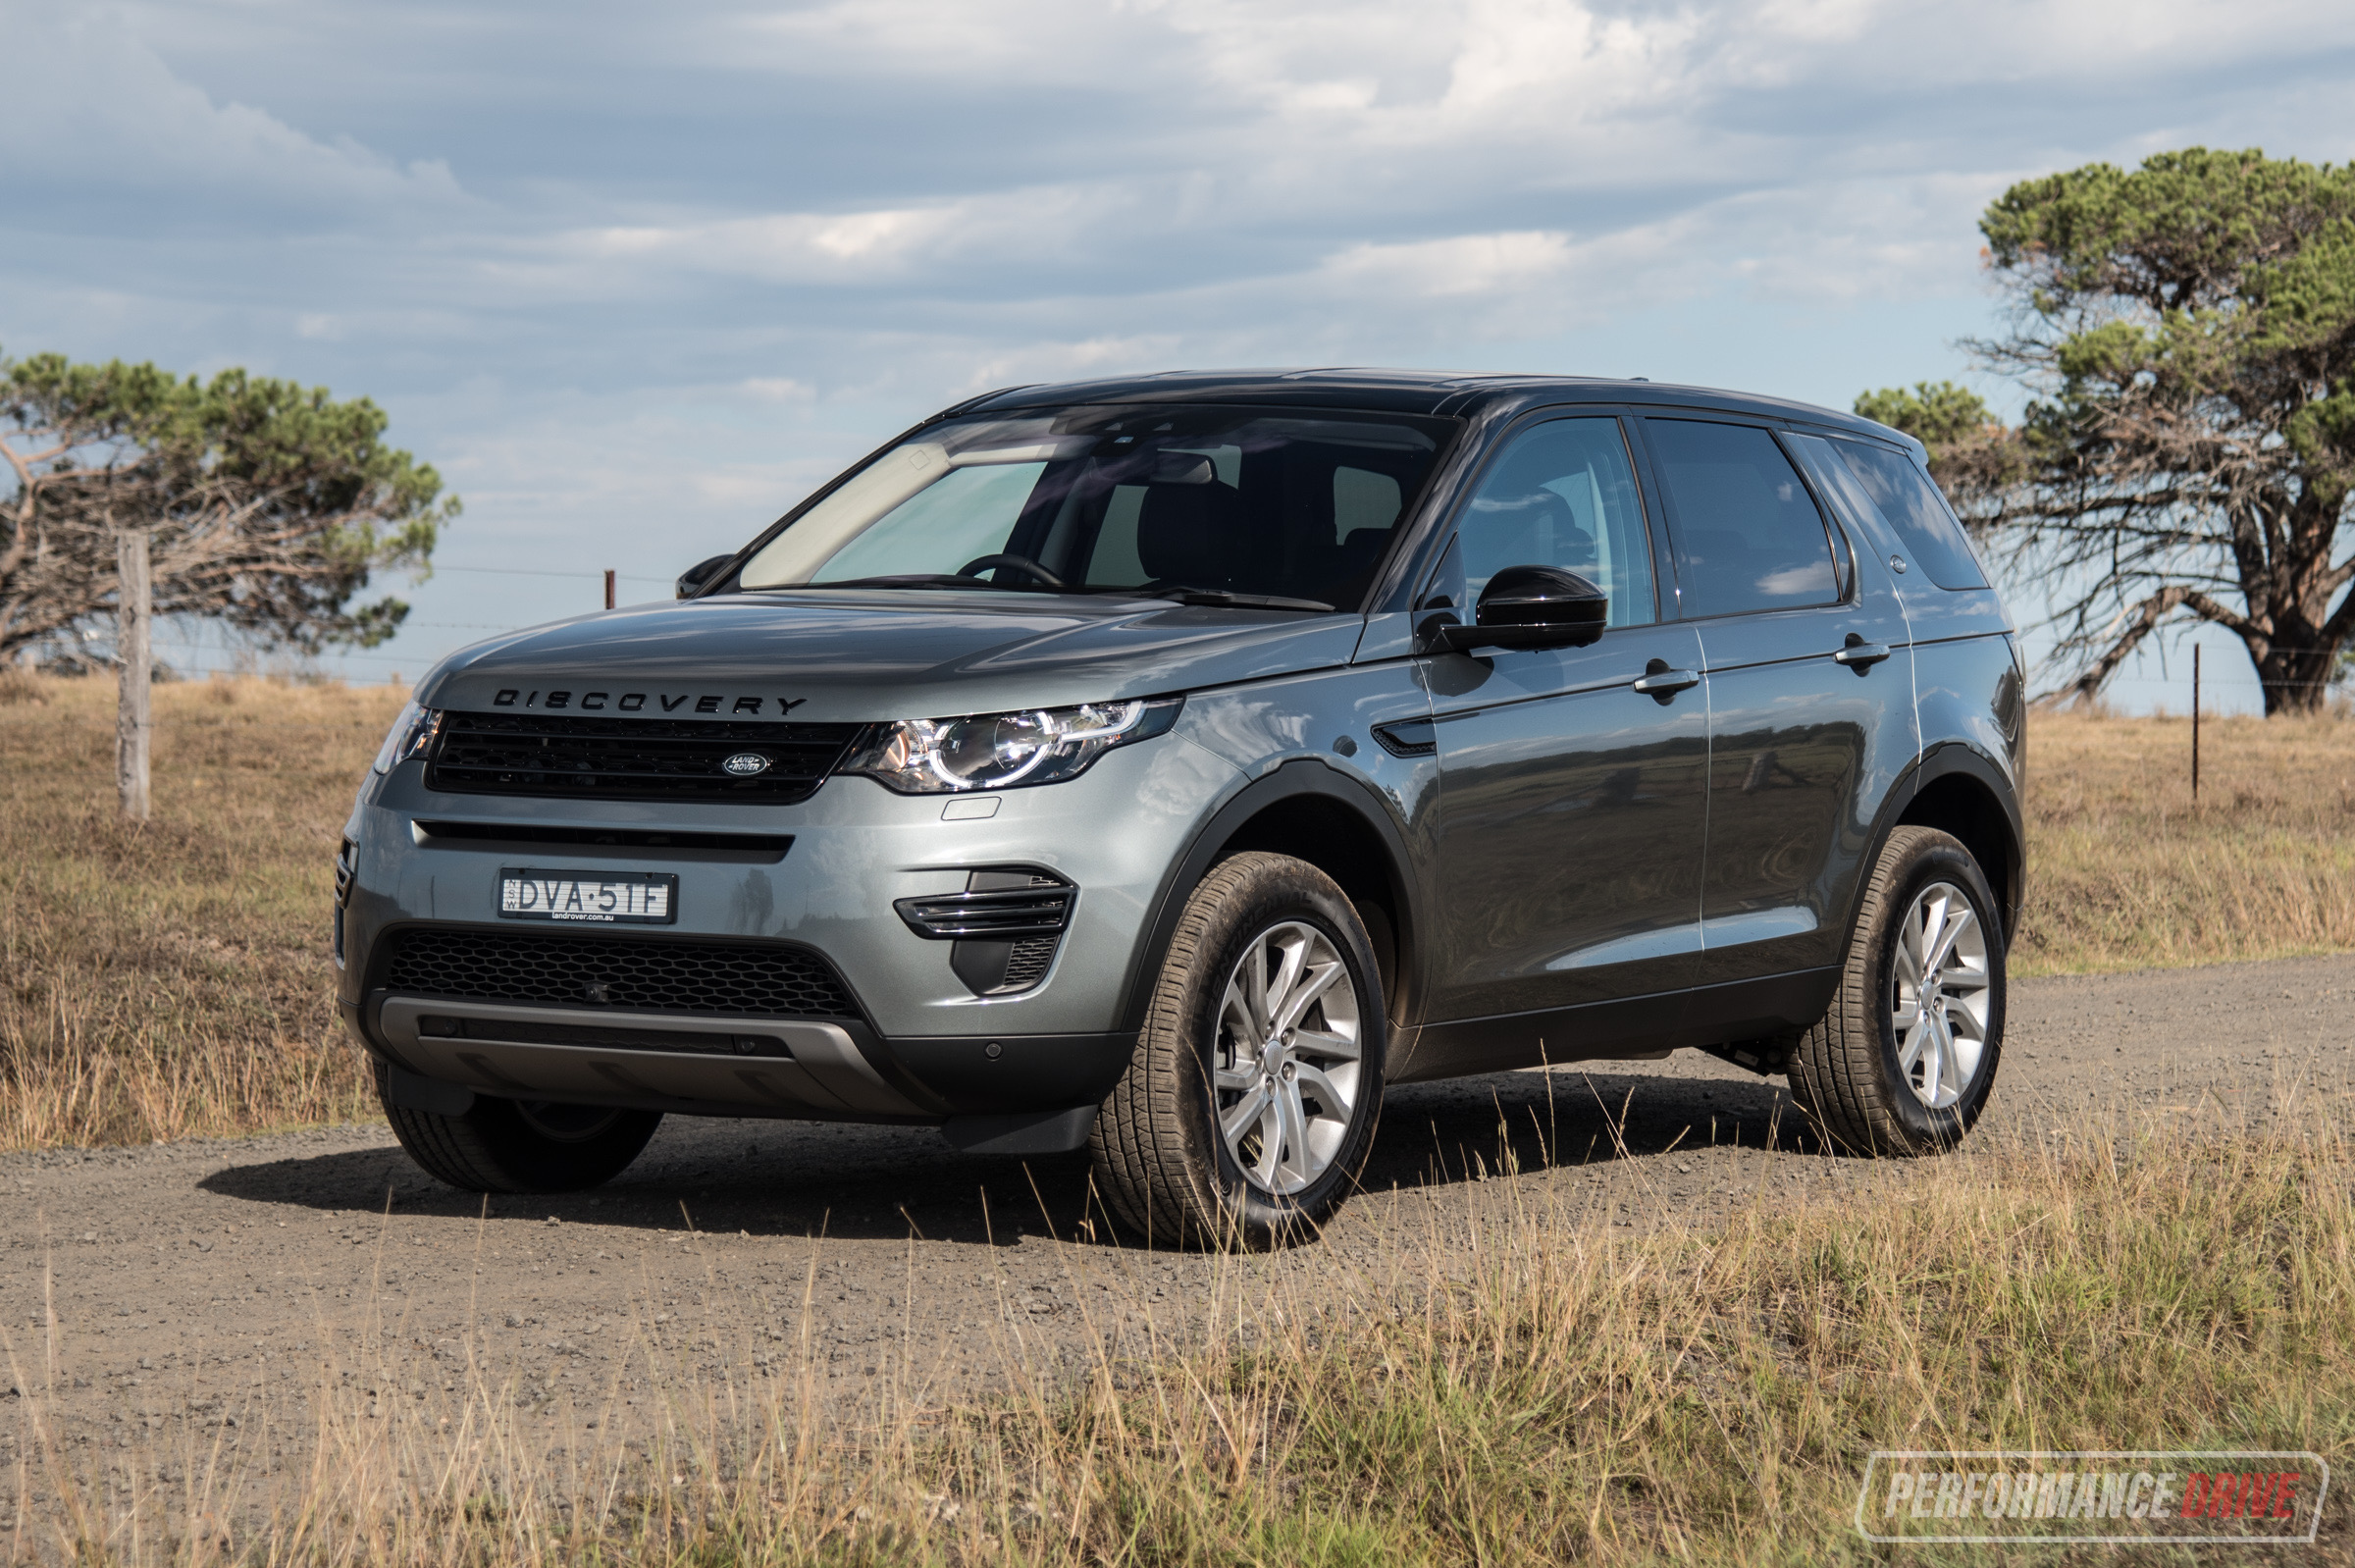 2018 Land Rover Discovery Sport Sd4 SE Review (video